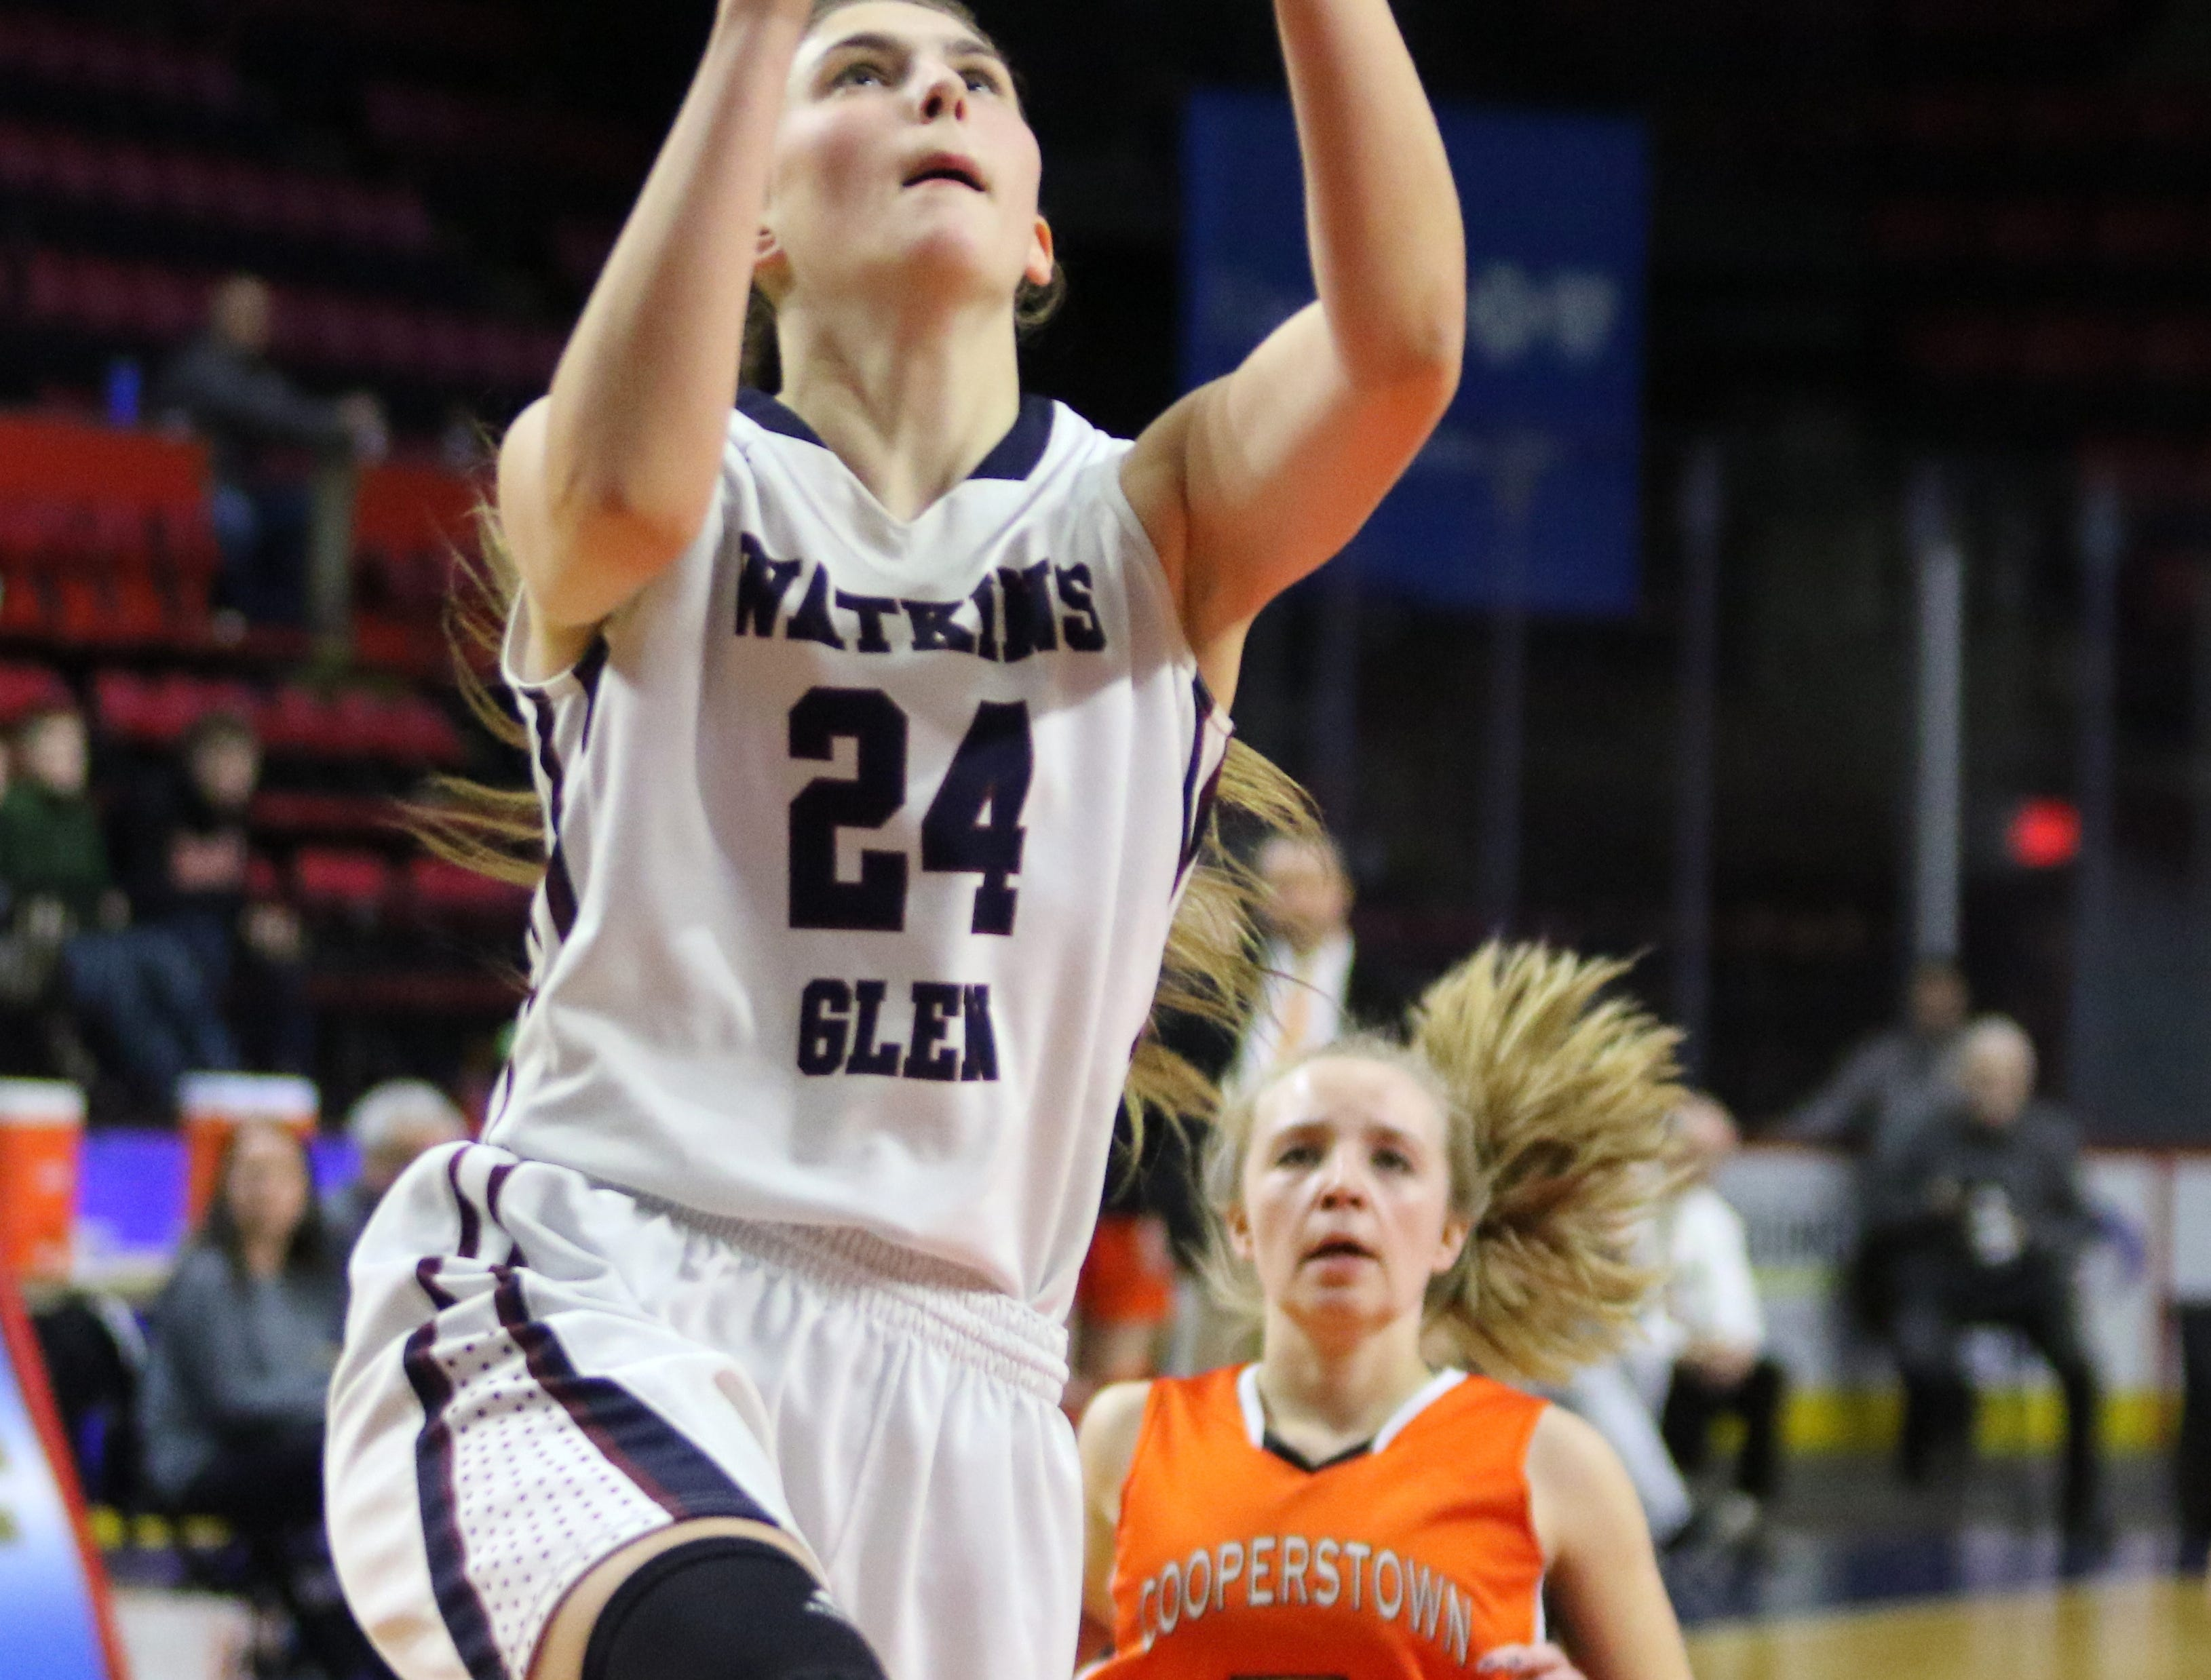 Watkins Glen was a 60-49 winner over Cooperstown in a Class C girls basketball state quarterfinal March 10, 2019 at Floyd L. Maines Veterans Memorial Arena in Binghamton.